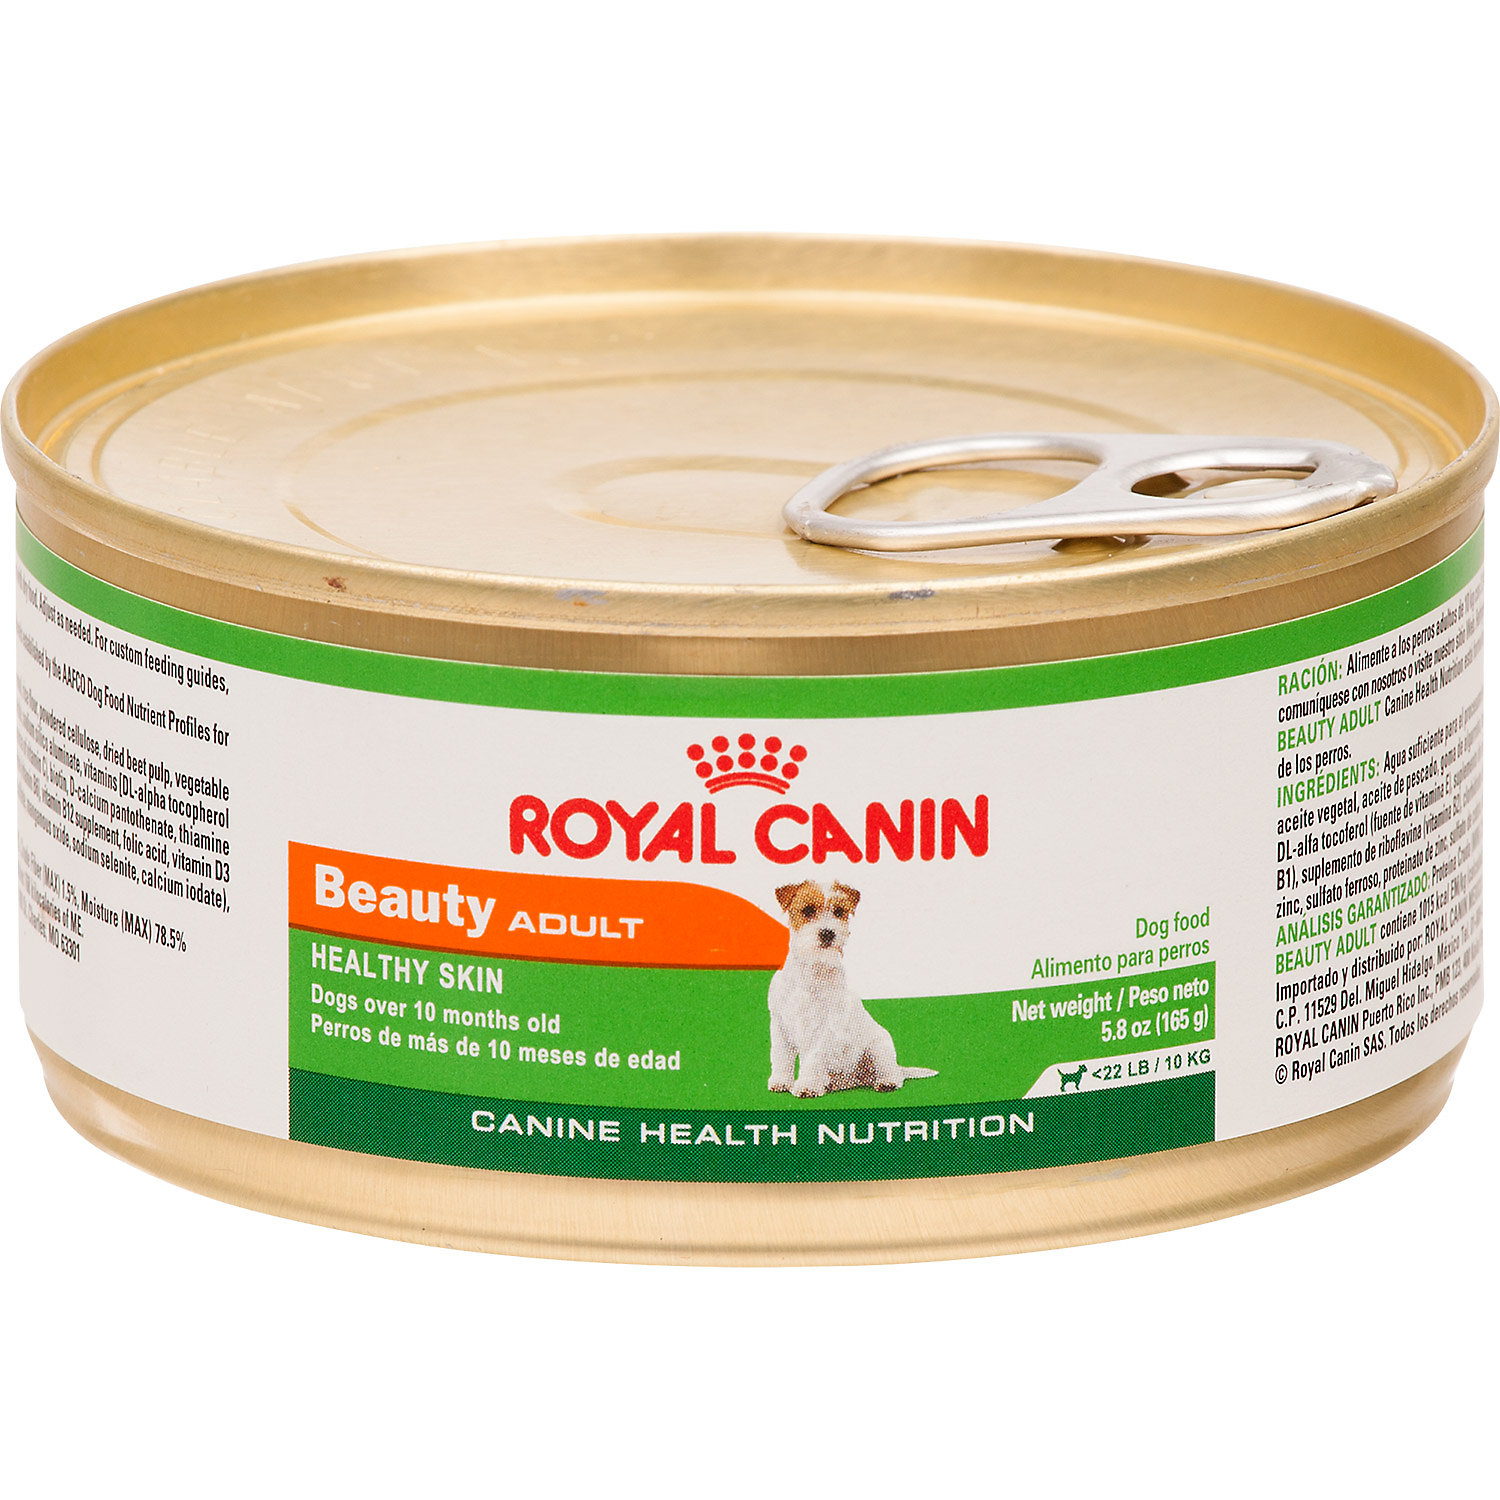 royal canin beauty canine health nutrition canned adult. Black Bedroom Furniture Sets. Home Design Ideas